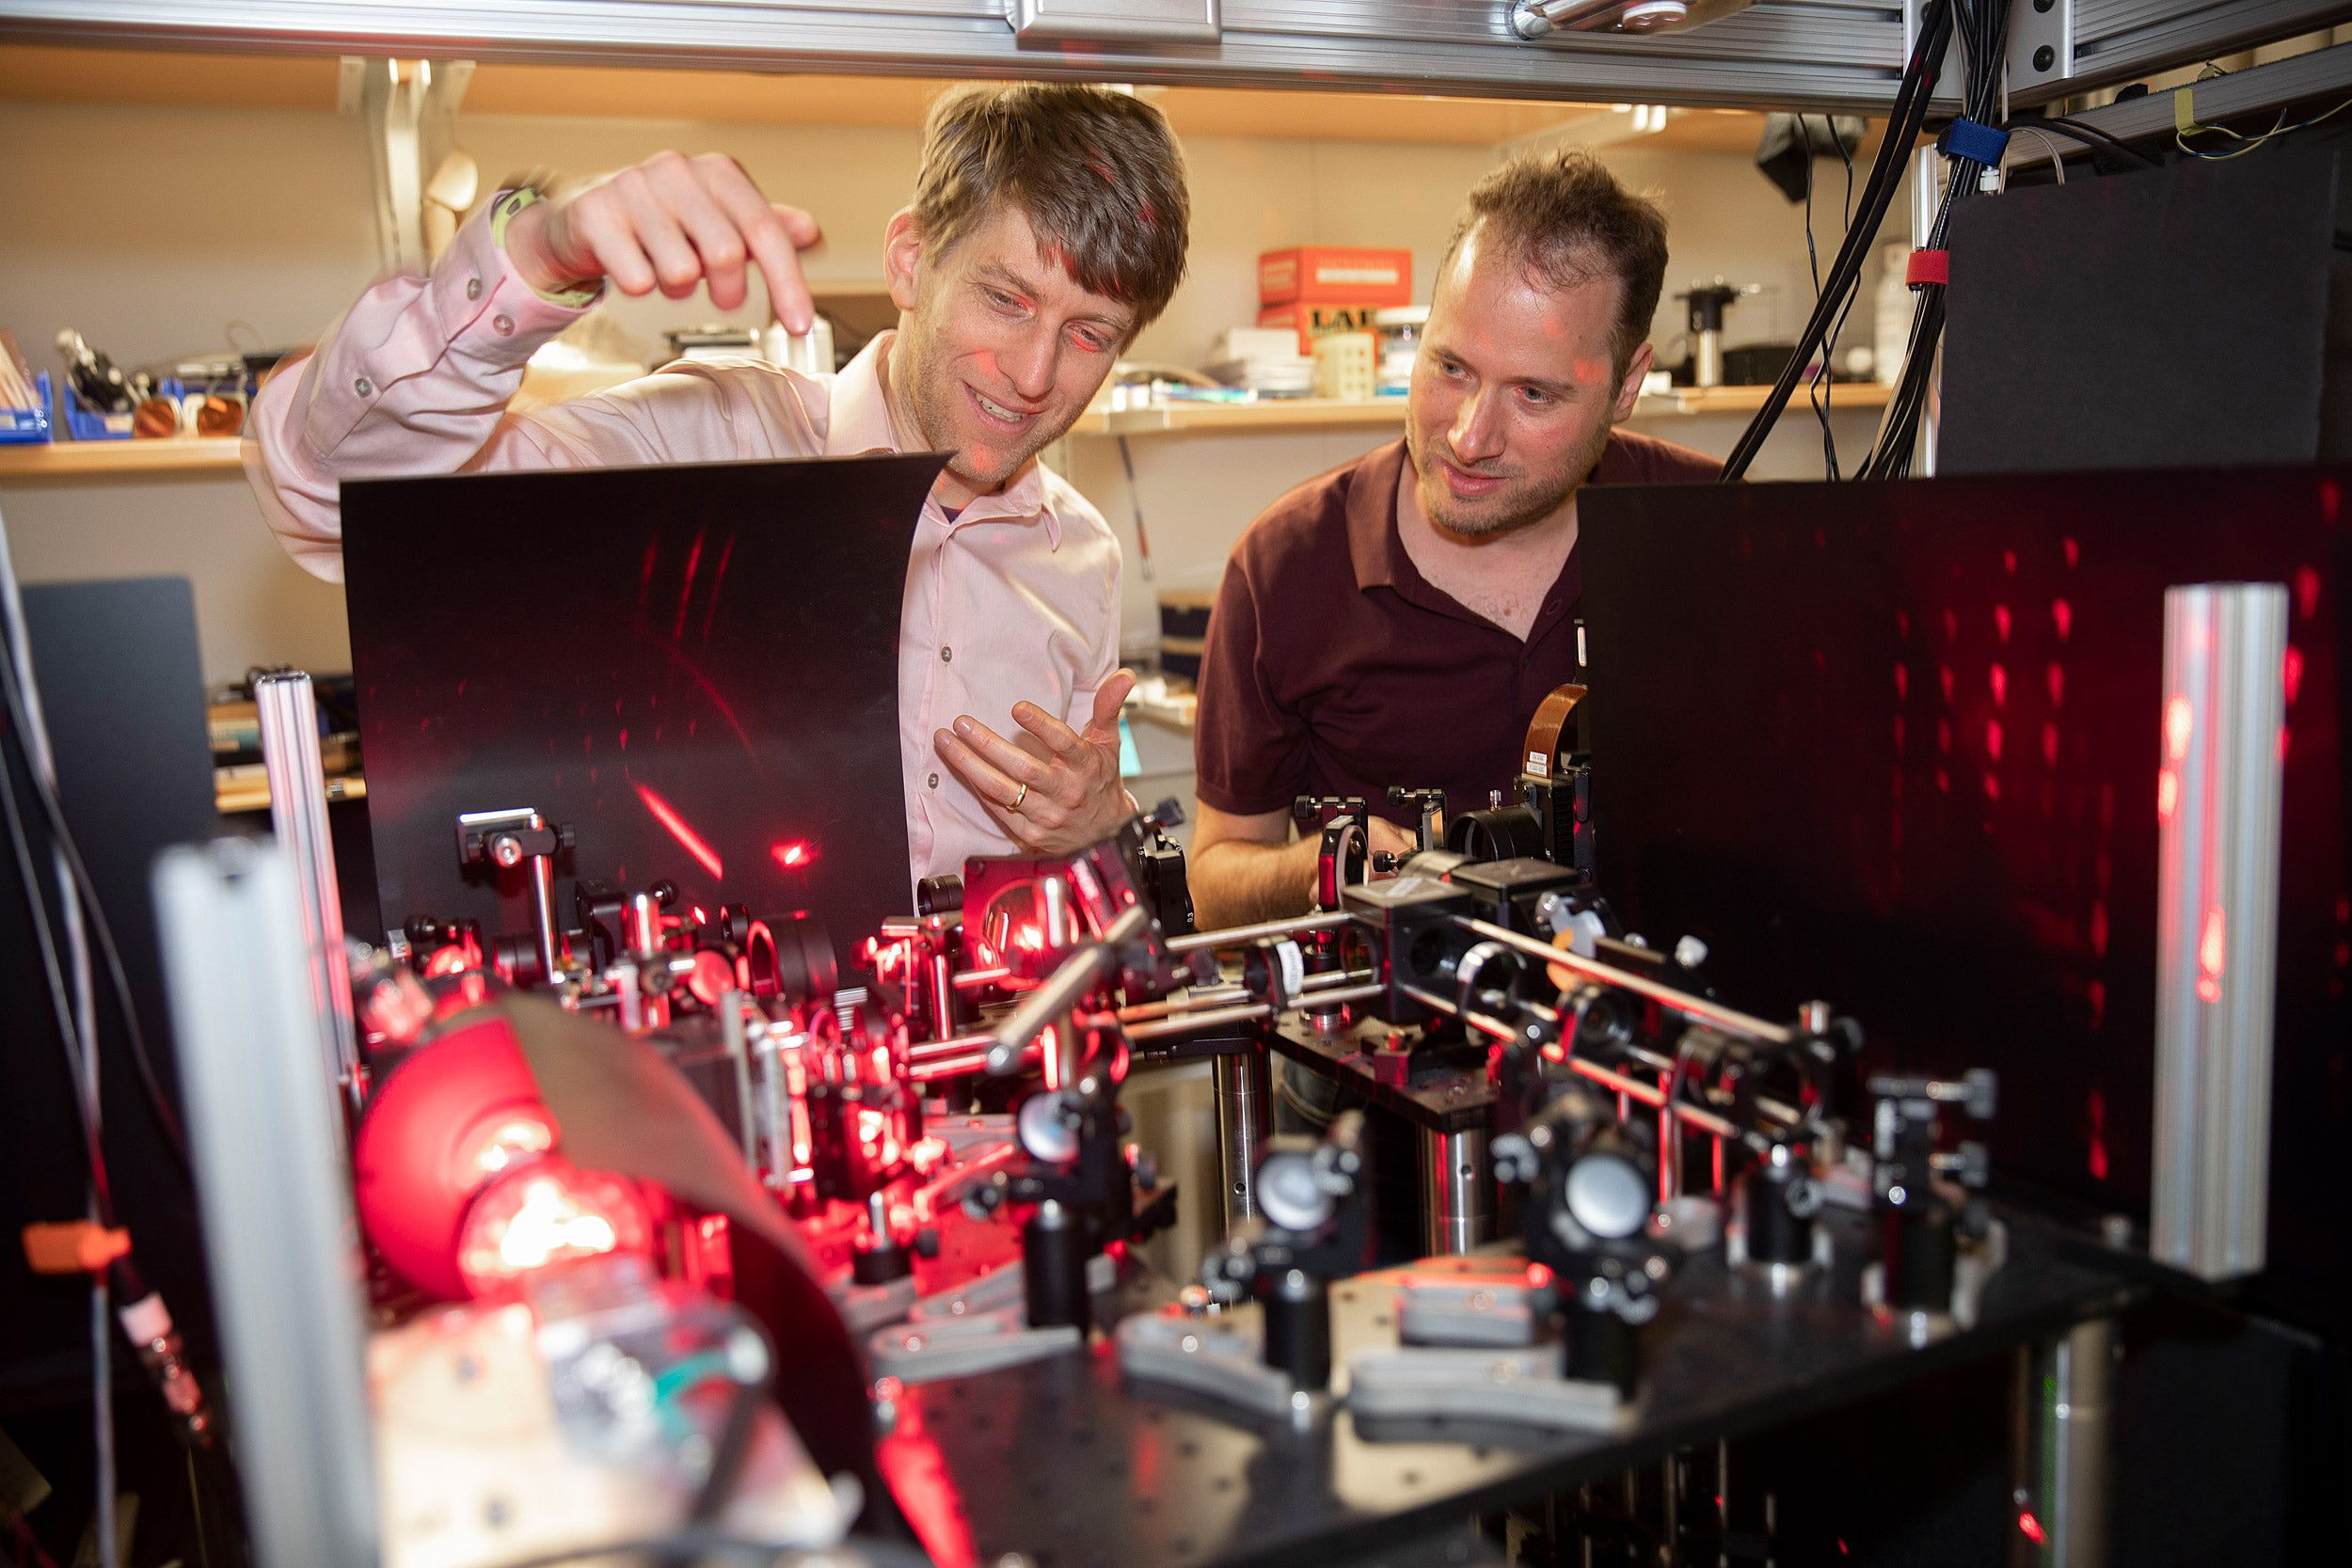 Researchers Adam Cohen and Yoav Adam examine their experiment in the lab